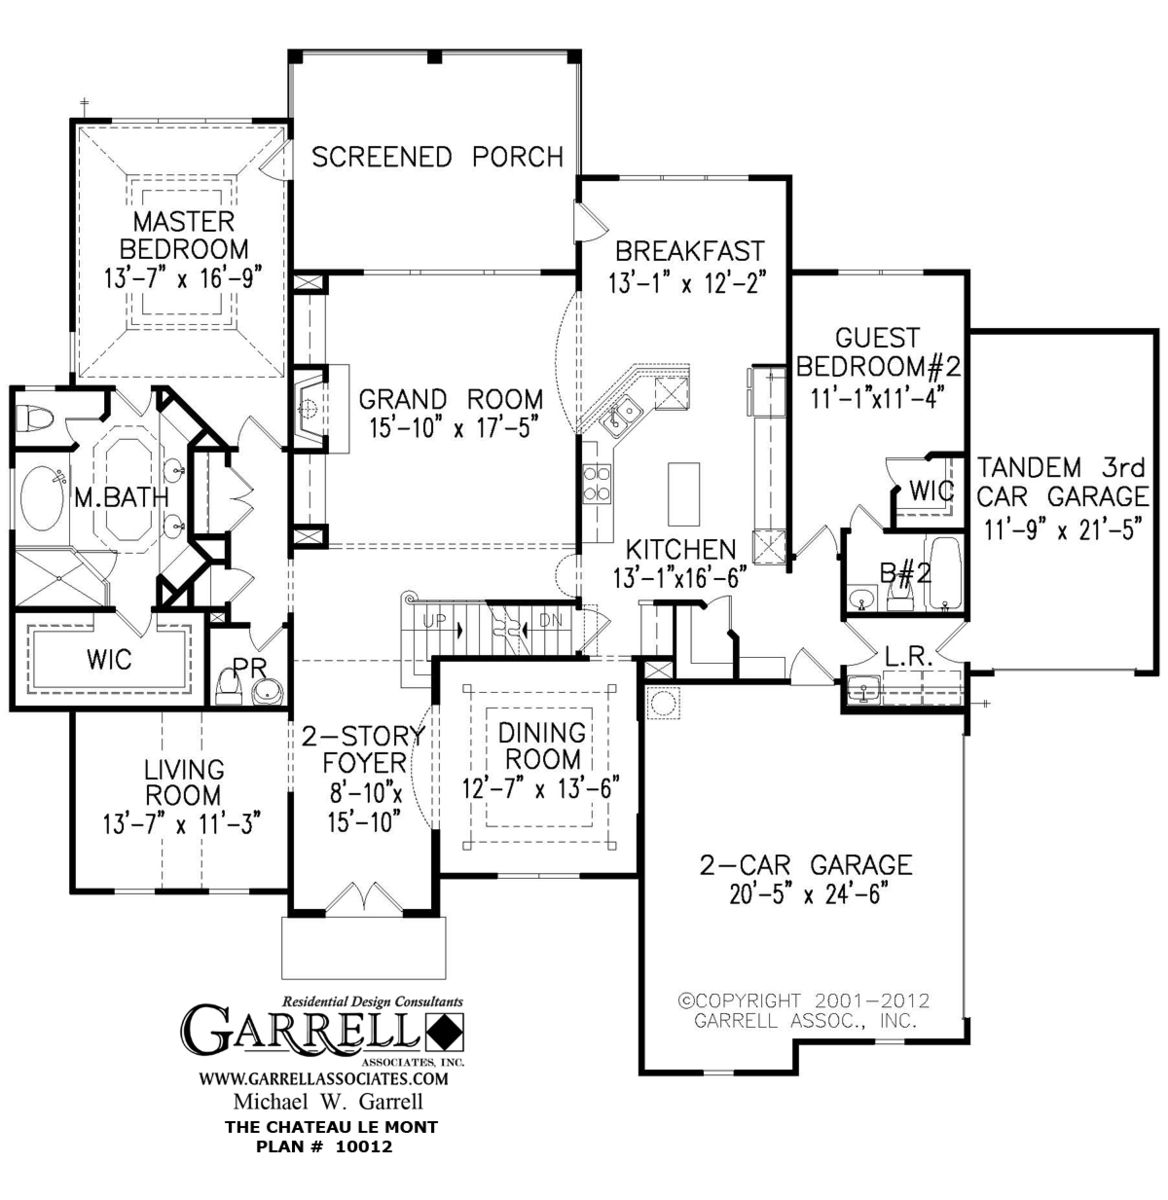 Layout chateau le mont house plan 10012 1st floor plan for French chateau house plans